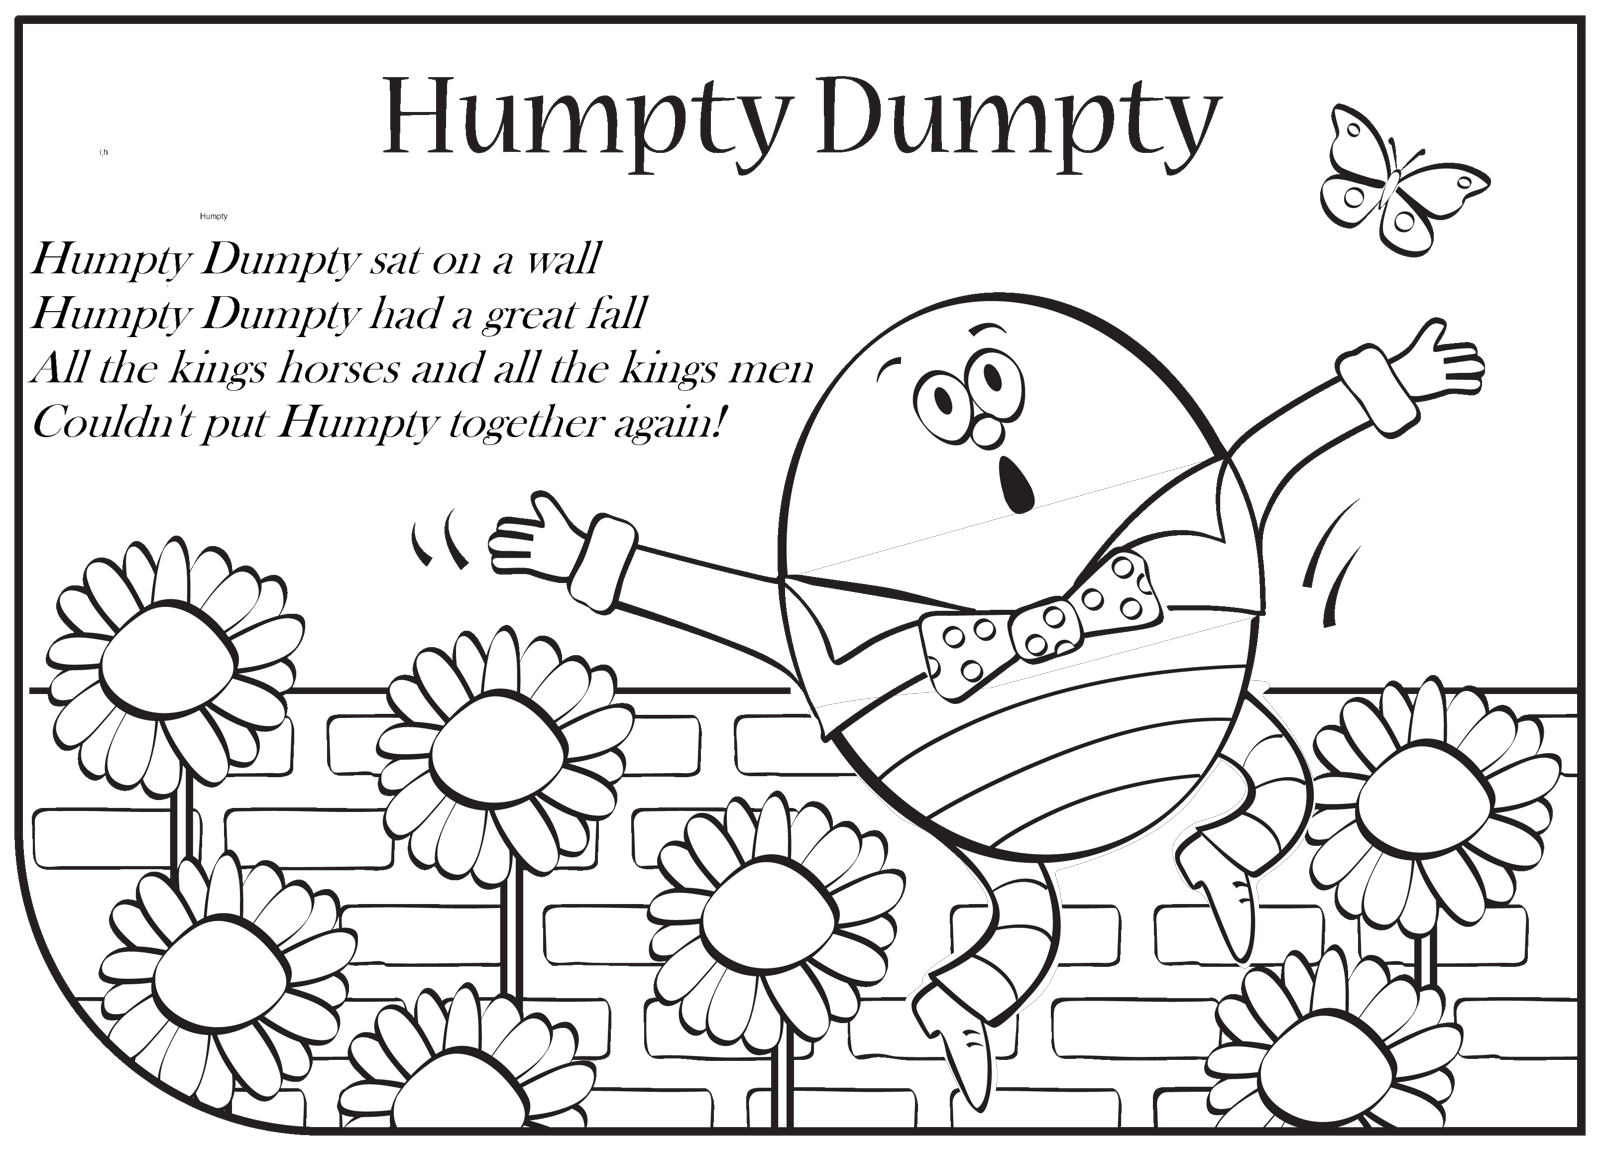 Free Humpty Dumpty Download Free Clip Art Free Clip Art On Clipart Library